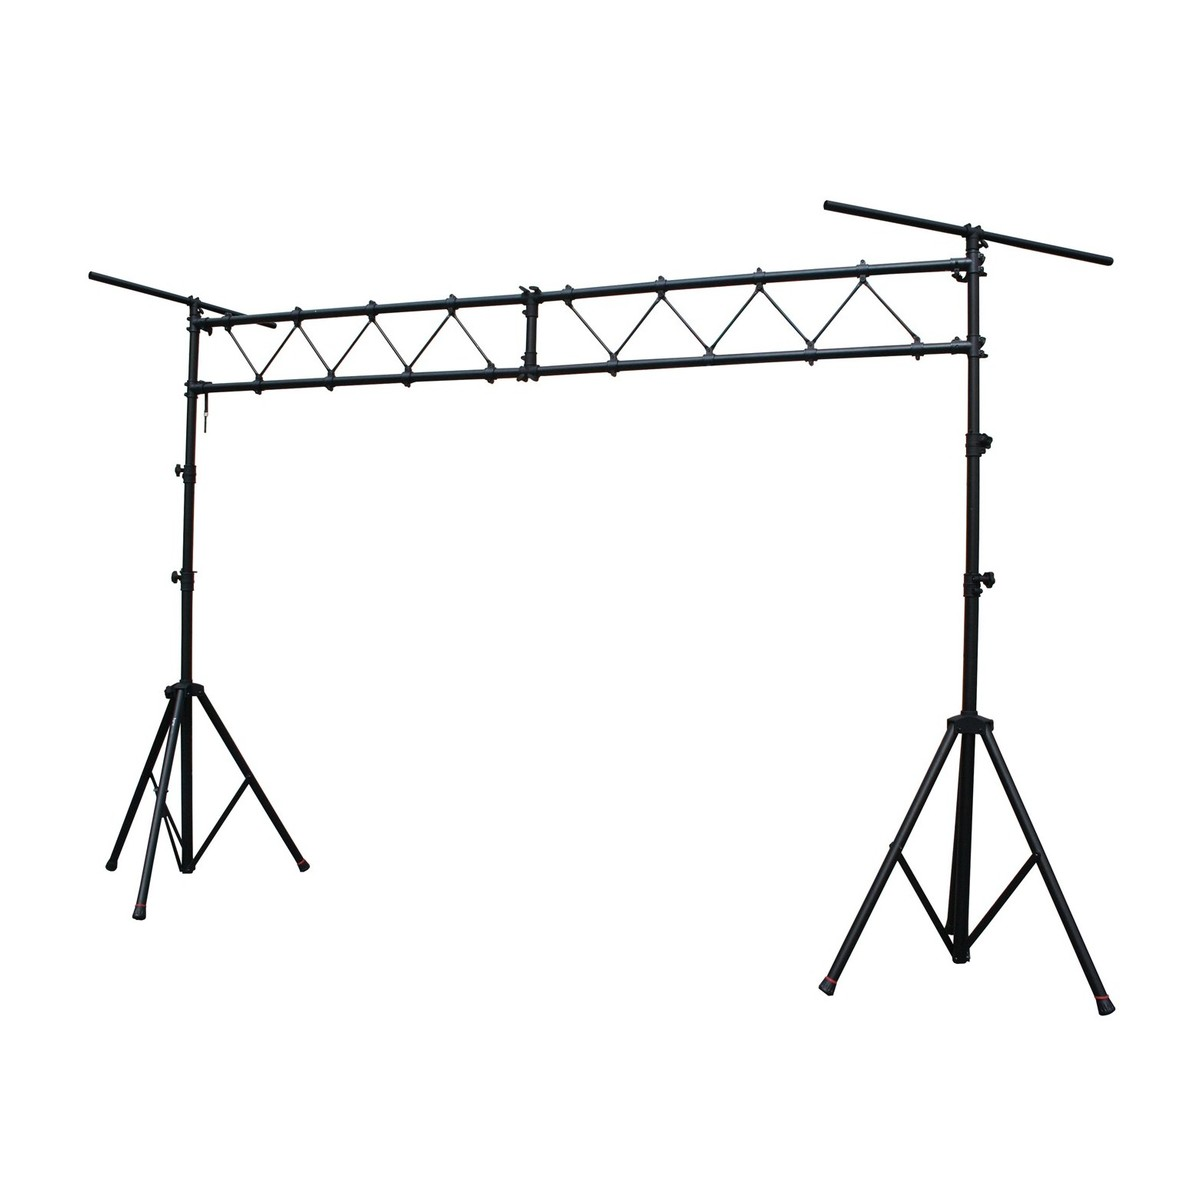 Frameworks Gfw Light Lt1 Aluminium Lighting Truss At